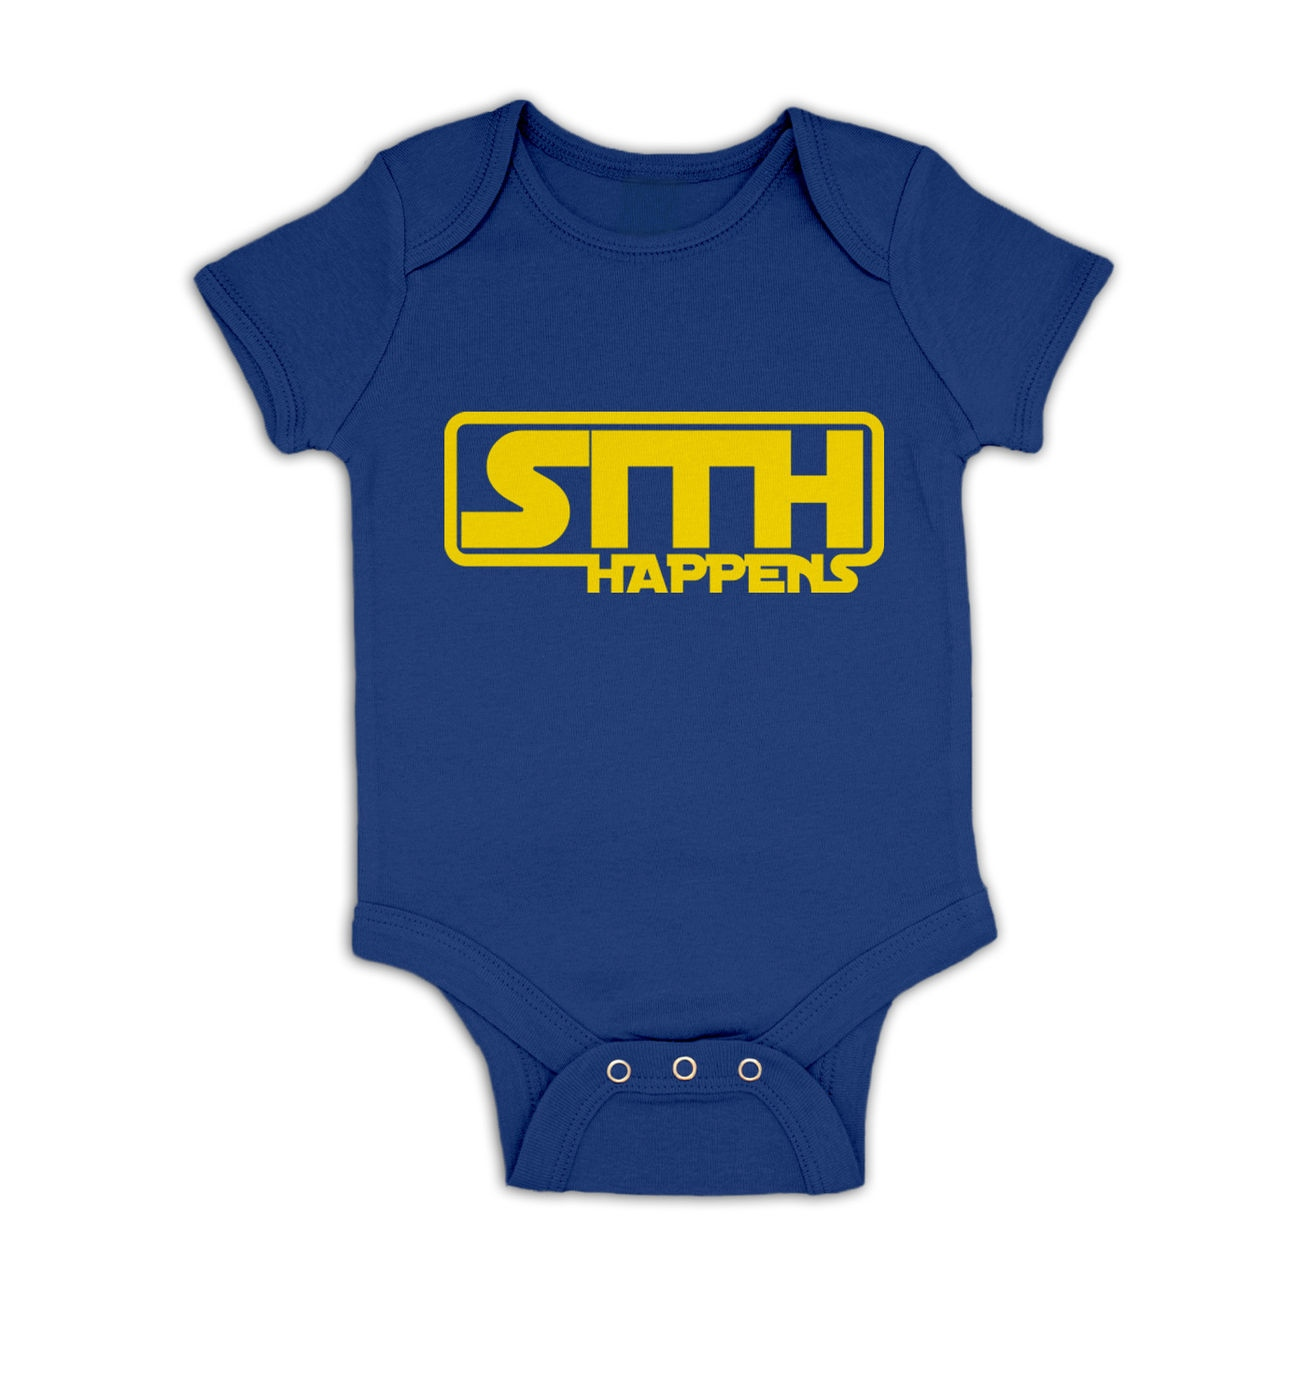 Sith Happens baby grow by Something Geeky